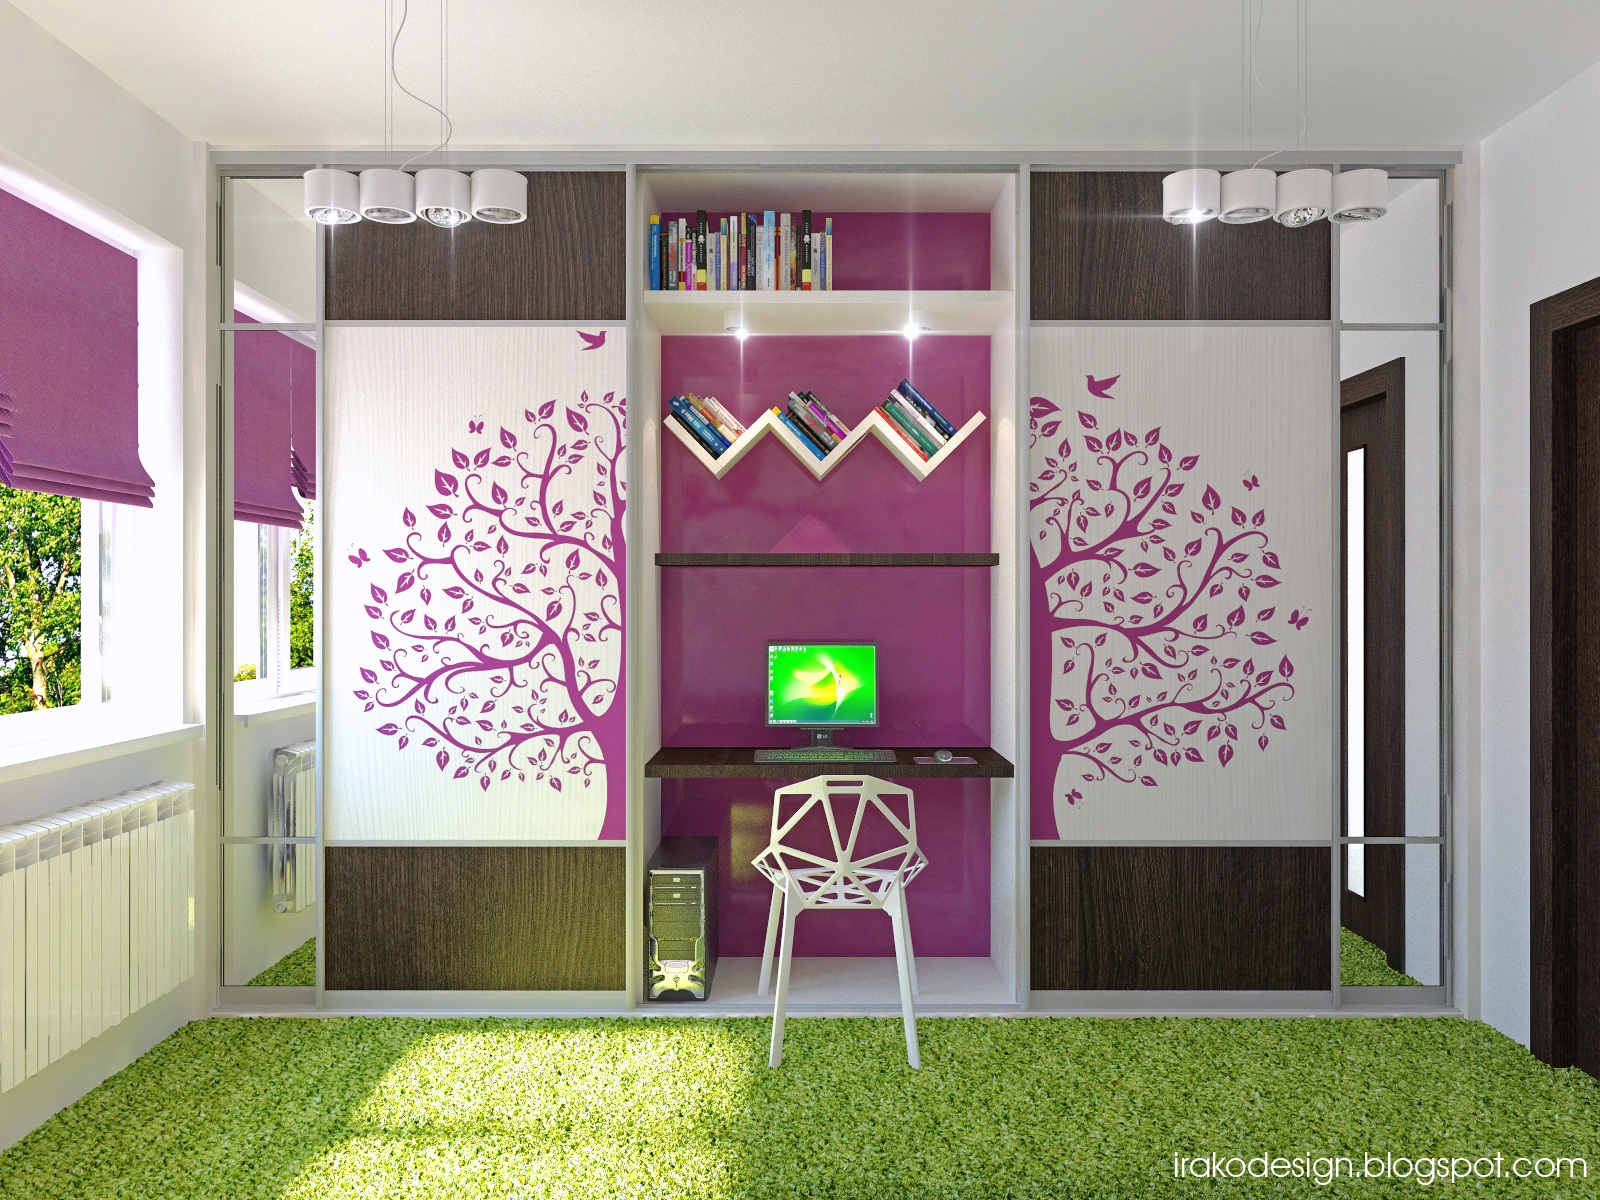 Bedroom design for 2 girls - Bedroom Design For 2 Girls 8